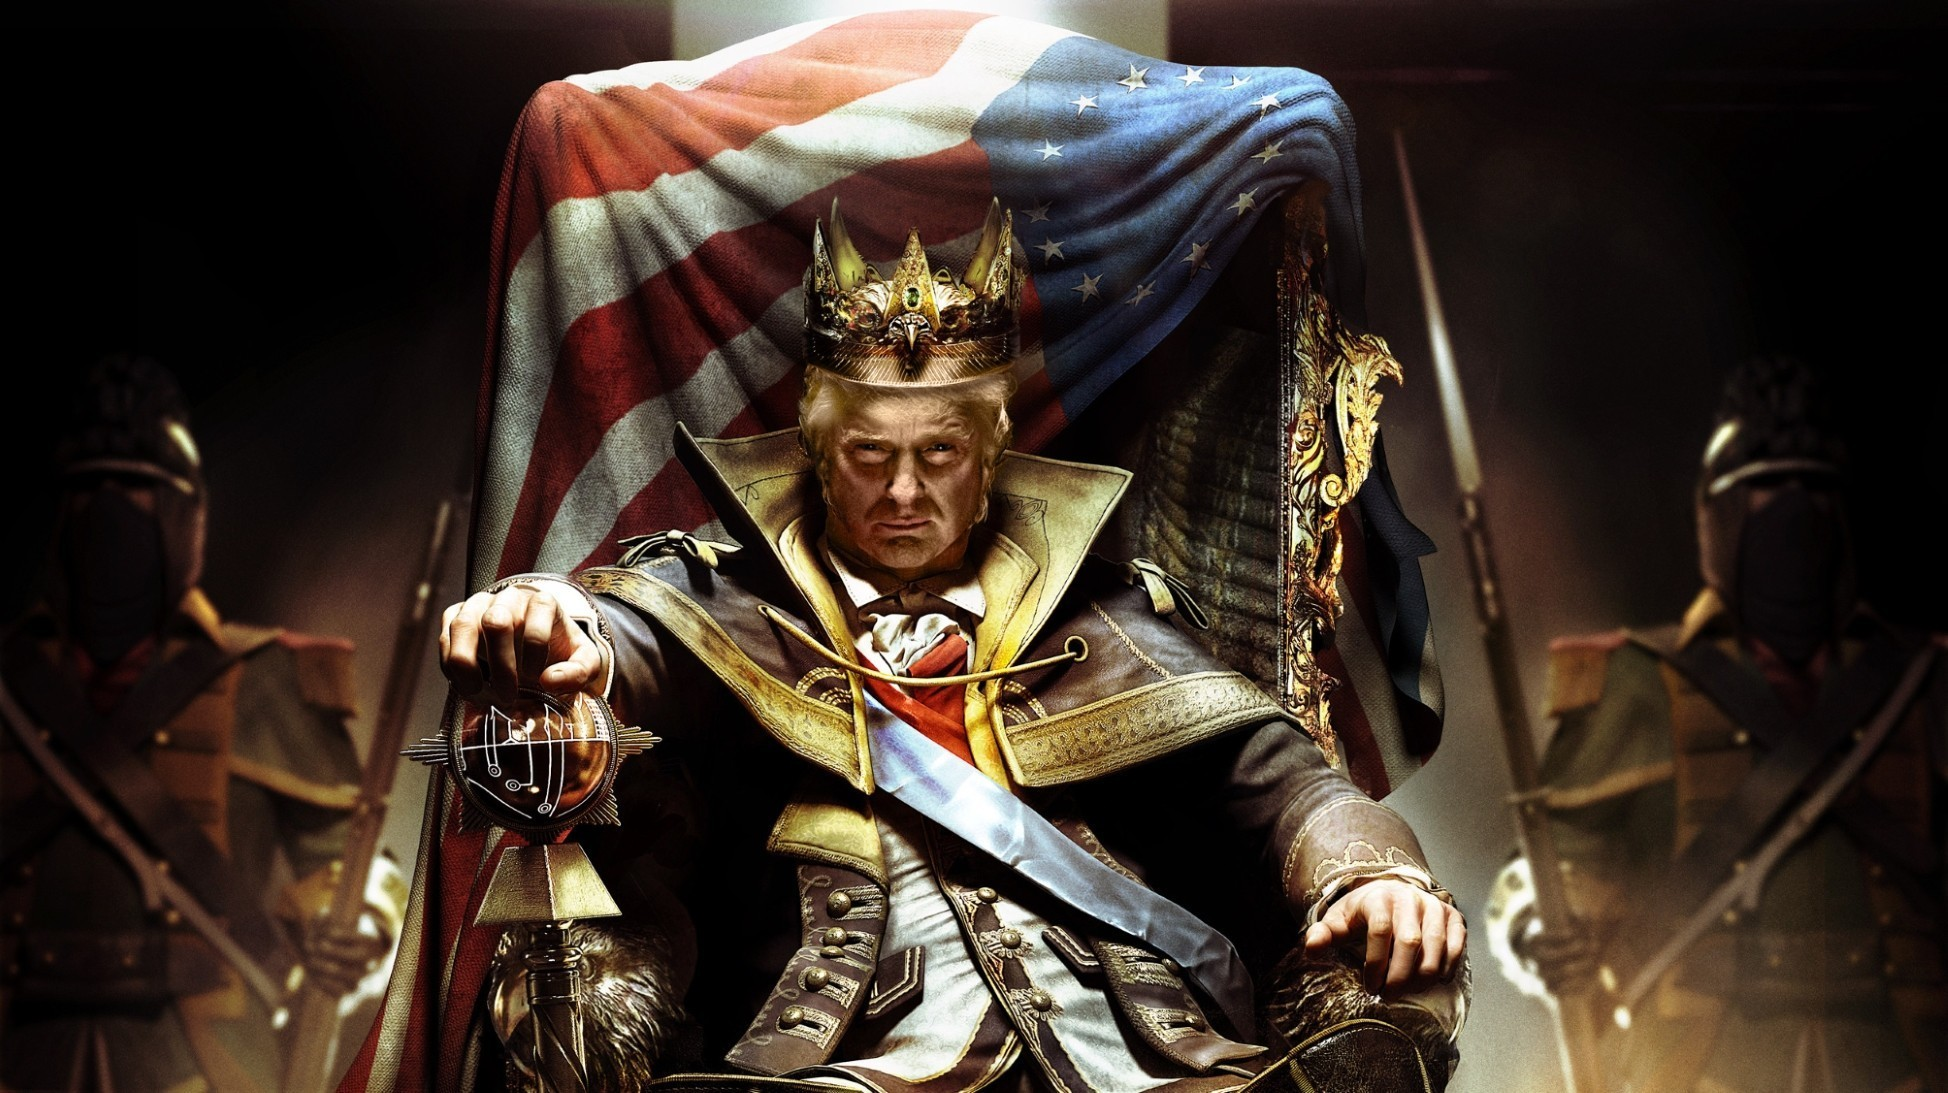 Donald Trump Wallpapers 69 Images